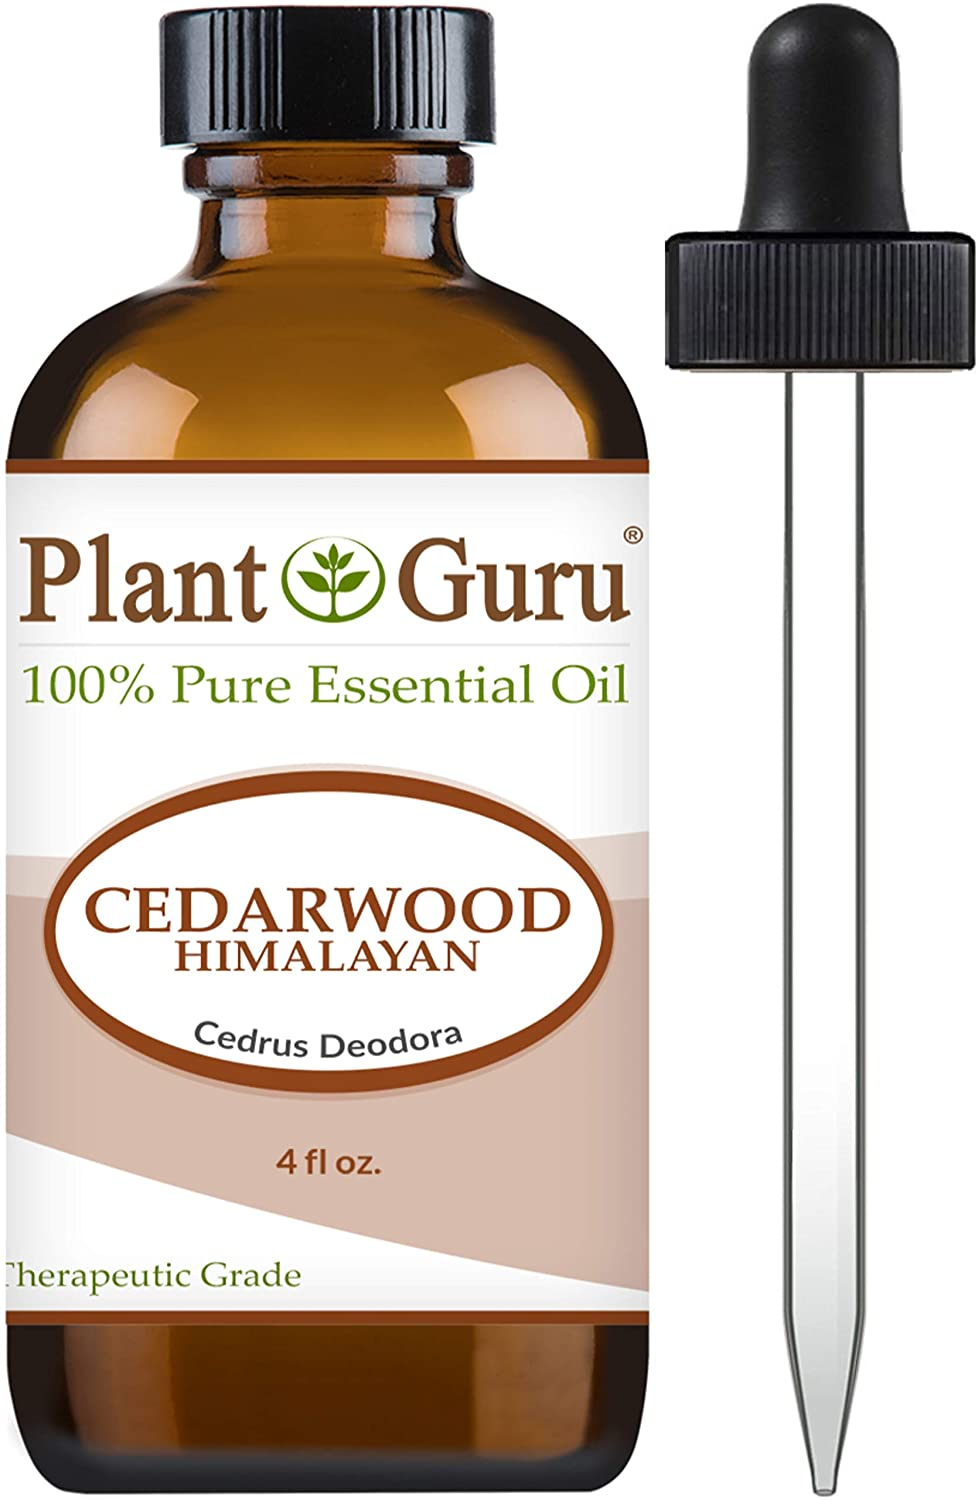 Cedarwood (Himalayan) Essential Oil 4 oz 100% Pure Undiluted Therapeutic Grade for Skin, Body and Hair Growth. Great for Aromatherapy Diffuser and DIY Soap Making essential oils for babies Essential oils for babies – sleep-inducing essential oils 710P wX 2BPNL